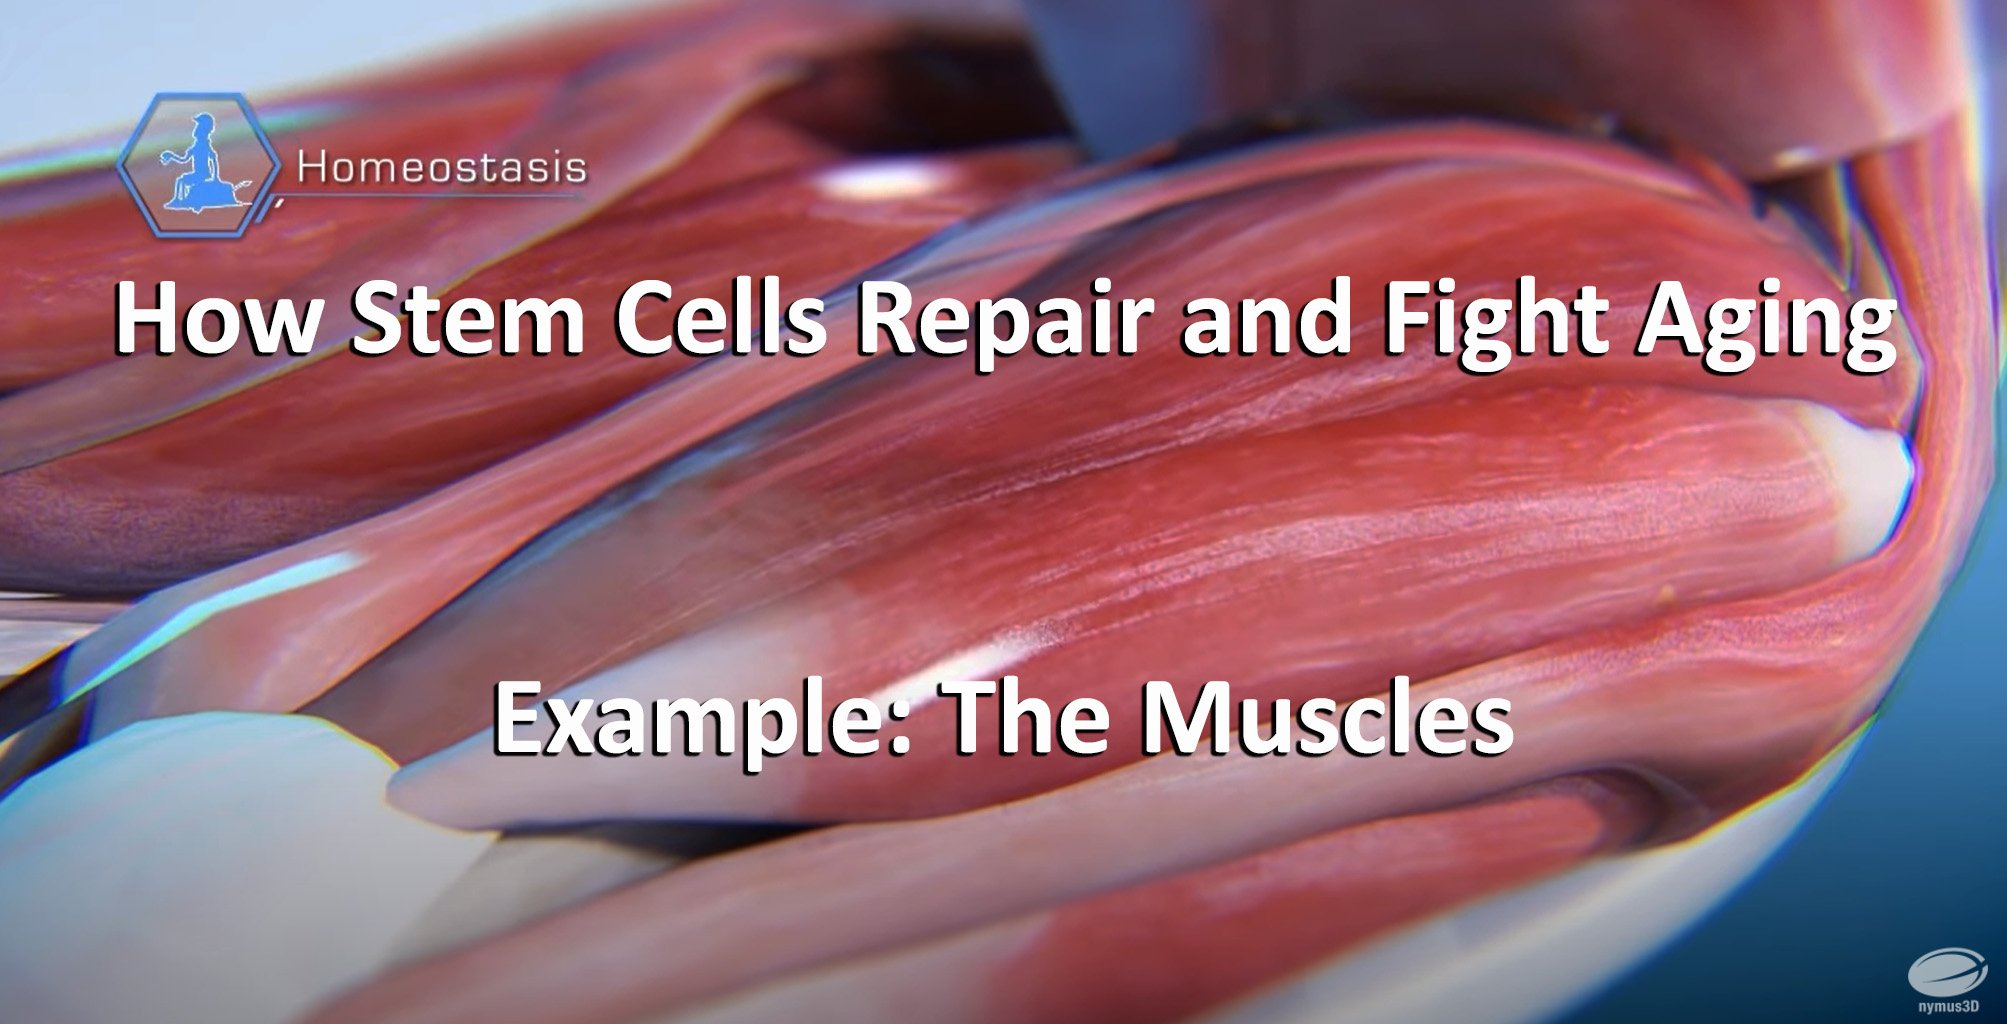 front How Stem Cells Repair and Fight Aging - The muscles